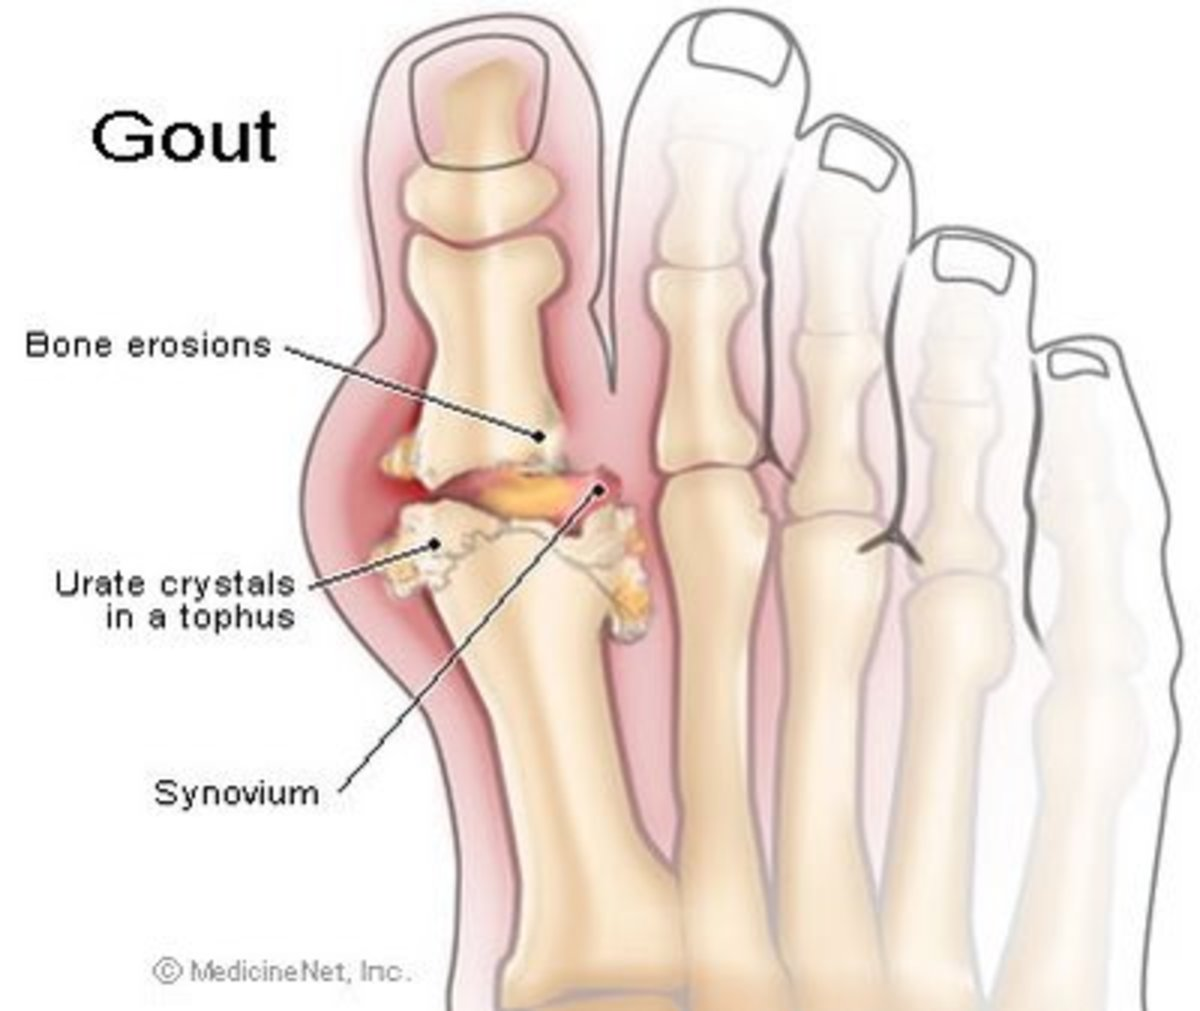 Living With Gout: A Lesson in Self Discipline